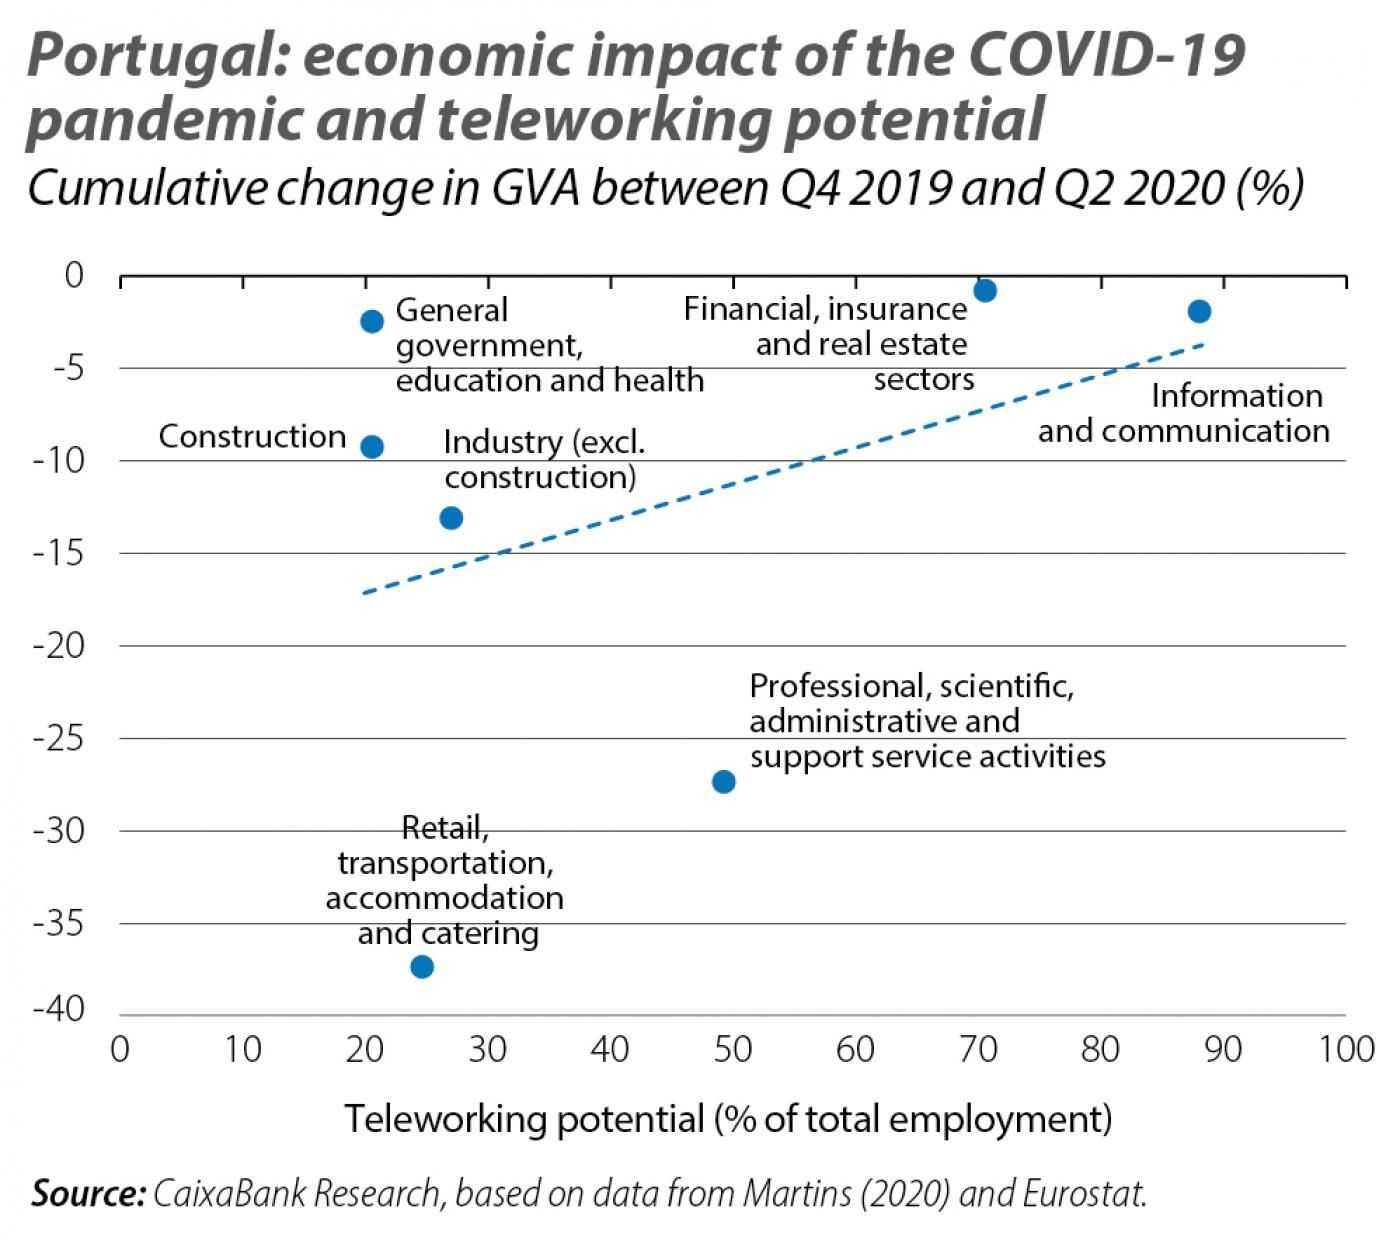 Portugal: economic impact of the COVID-19 pandemic and teleworking potential